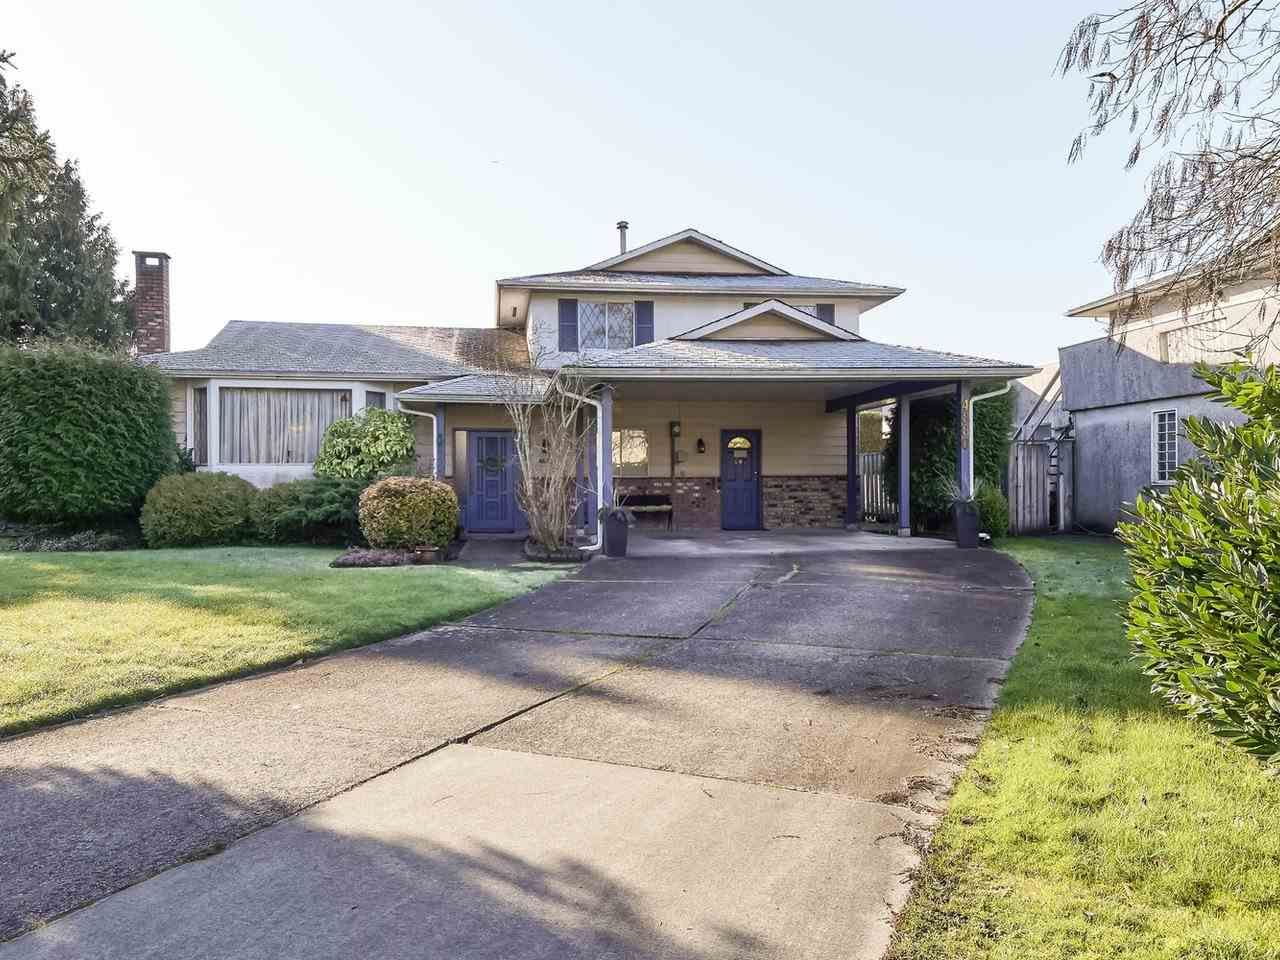 Photo 1: Photos: 4880 FORTUNE AVENUE in Richmond: Steveston North House for sale : MLS®# R2435063